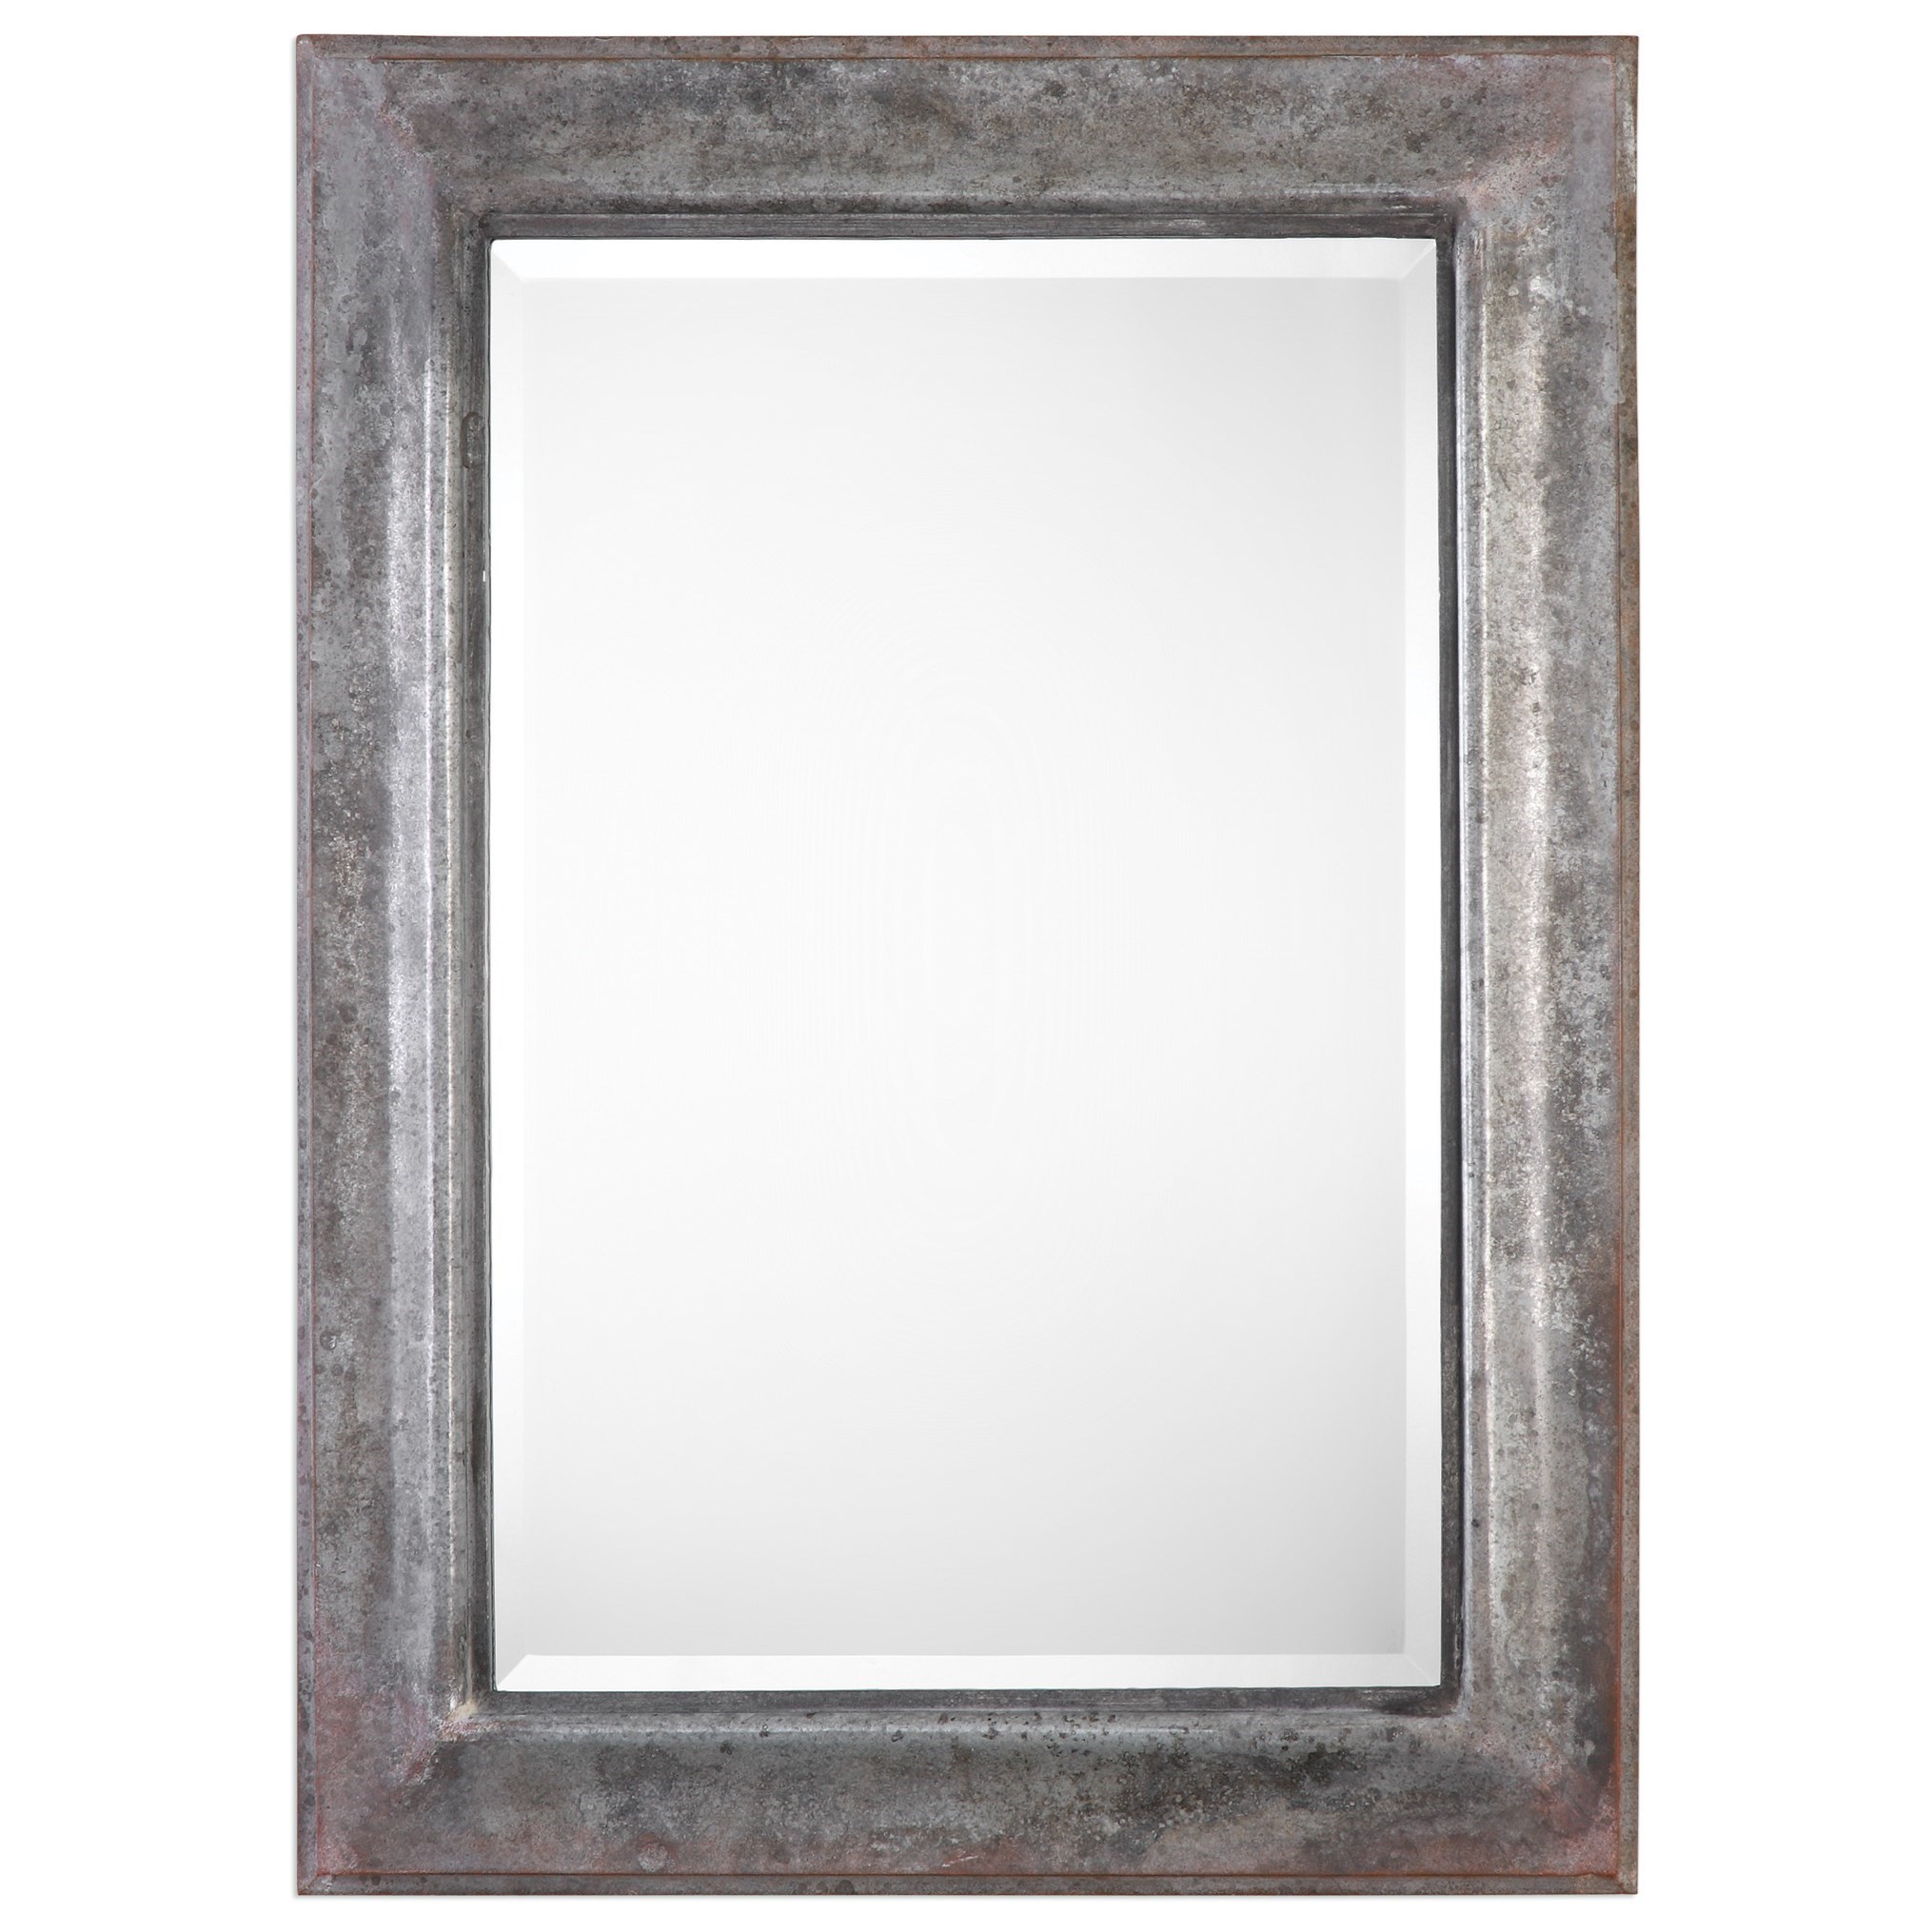 Uttermost Mirrors  Agathon Aged Stone Gray Mirror - Item Number: 09127